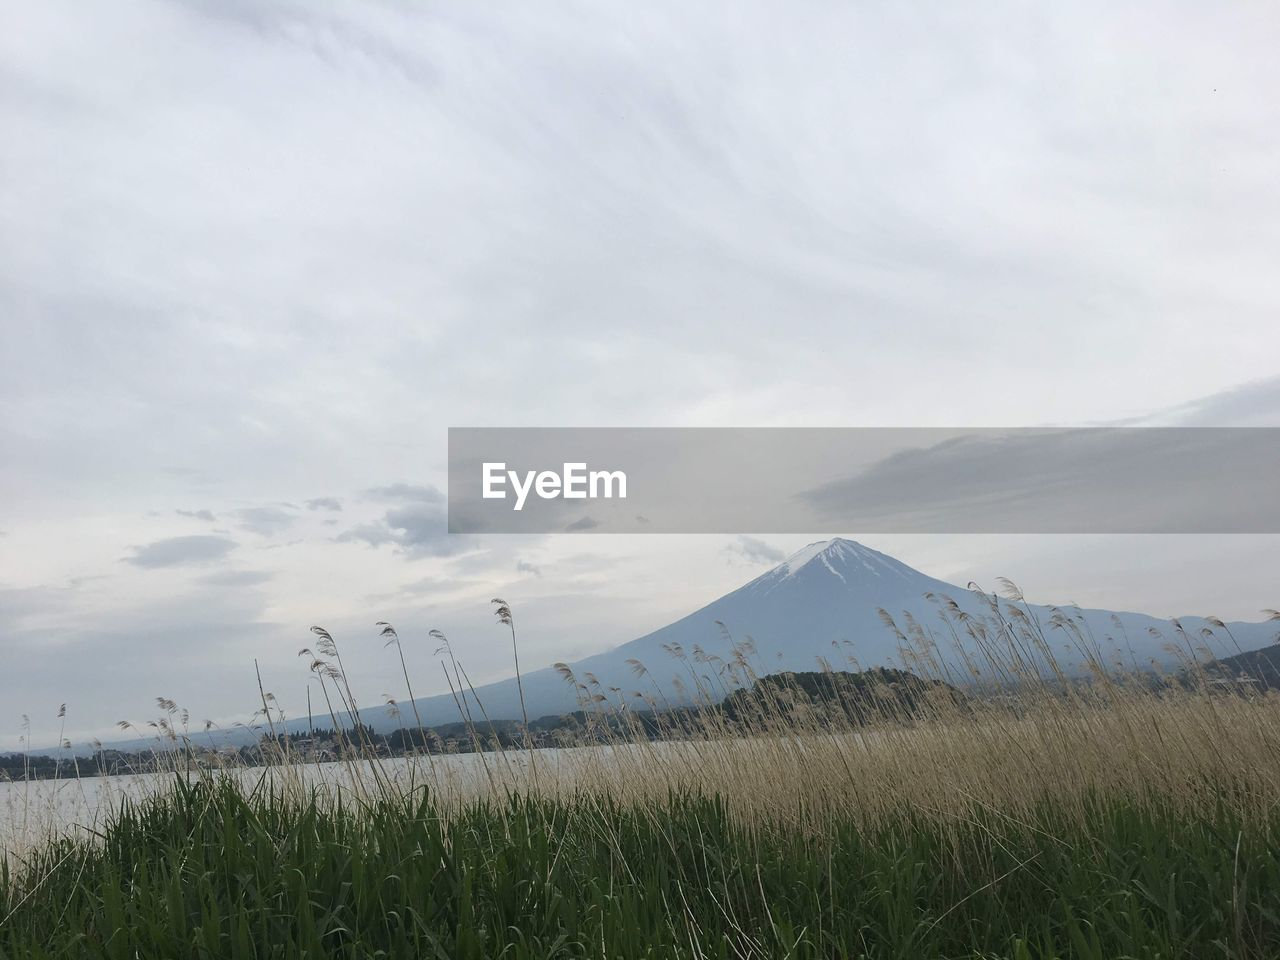 sky, mountain, cloud - sky, beauty in nature, plant, scenics - nature, grass, land, nature, tranquil scene, landscape, non-urban scene, environment, no people, tranquility, day, field, outdoors, snow, mountain range, snowcapped mountain, mountain peak